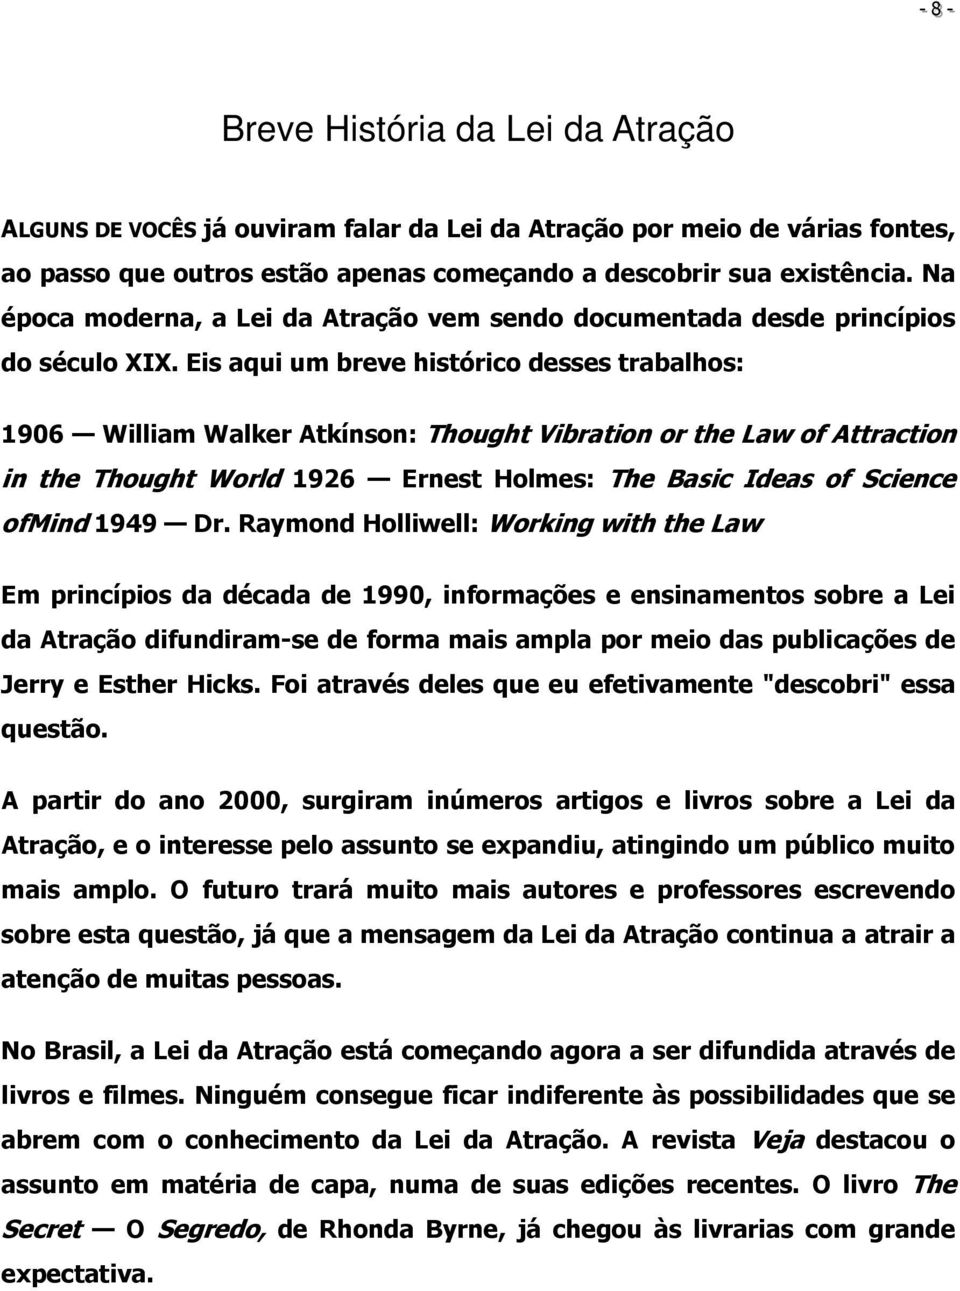 Eis aqui um breve histórico desses trabalhos: 1906 William Walker Atkínson: Thought Vibration or the Law of Attraction in the Thought World 1926 Ernest Holmes: The Basic Ideas of Science ofmind 1949